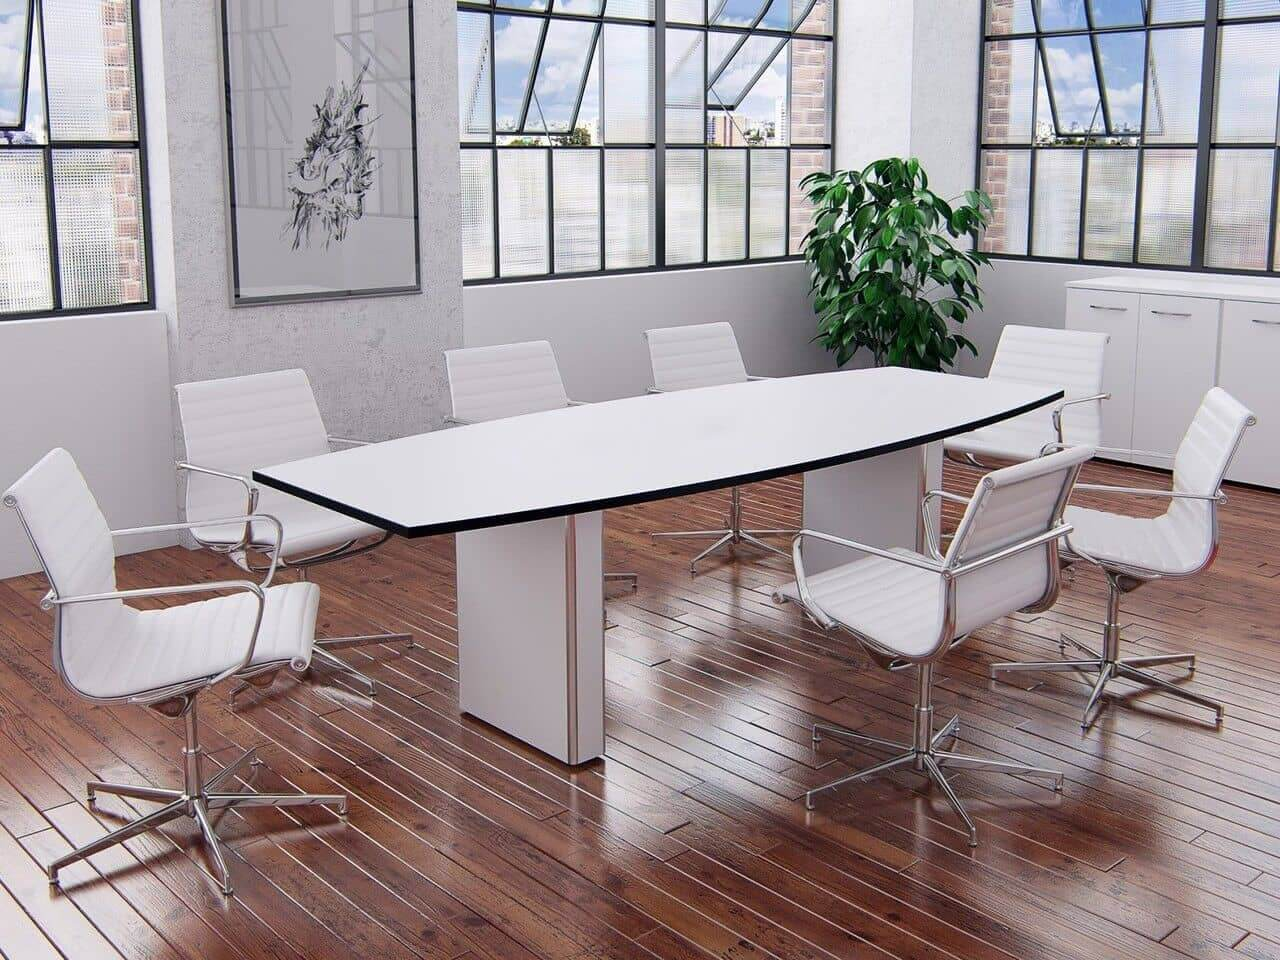 Making Shopping For Office Furniture Simple, Clear And Good Value ...